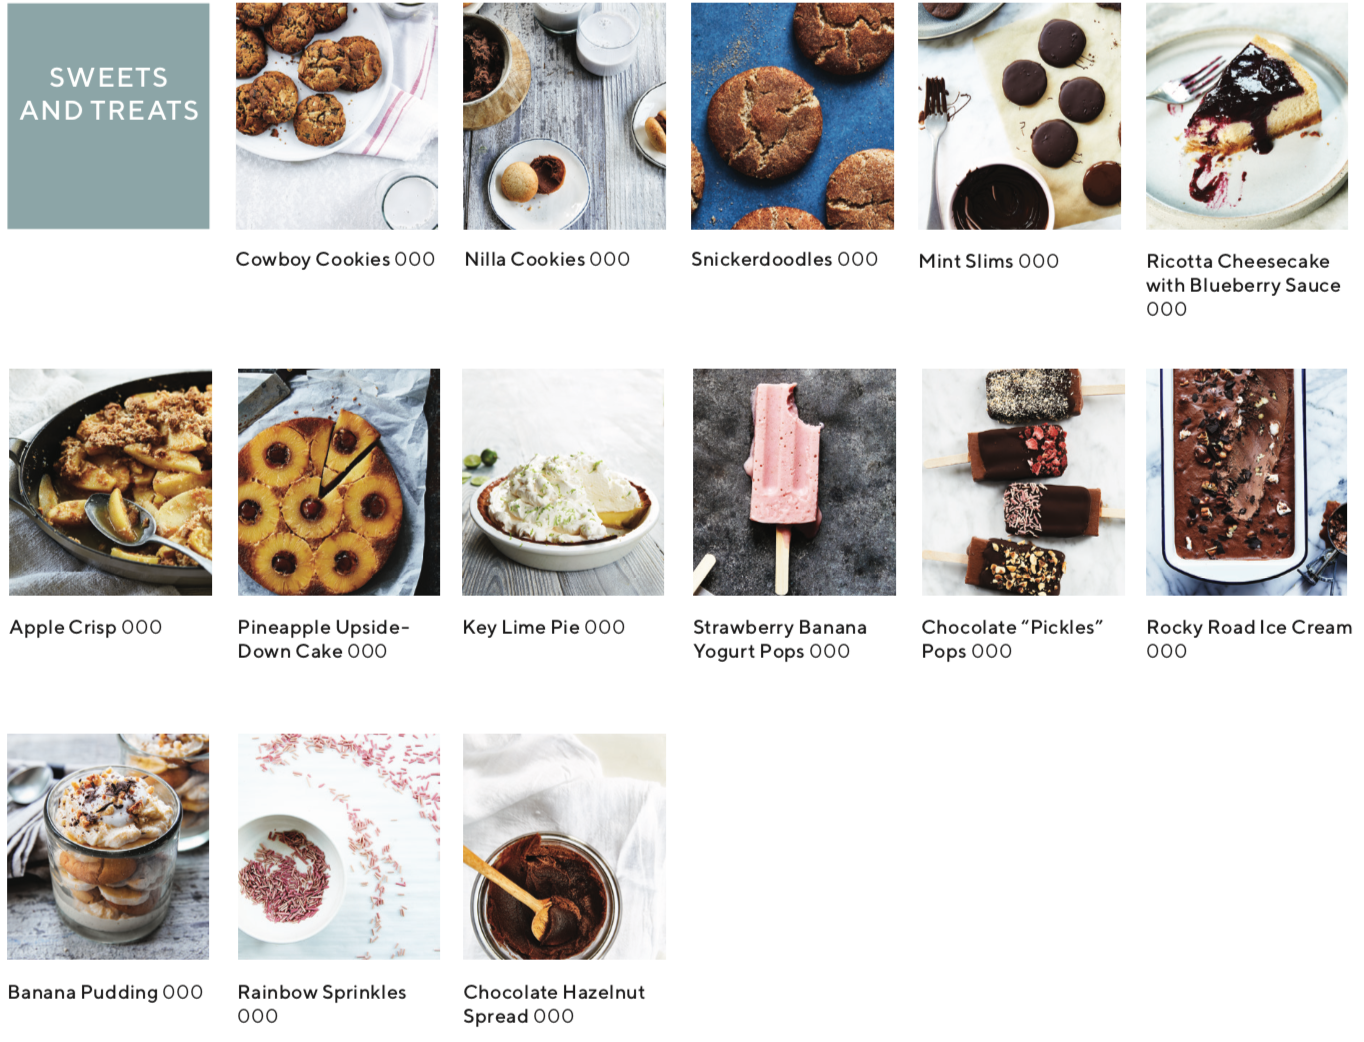 recipe index showing images of recipes that are sweets and treats